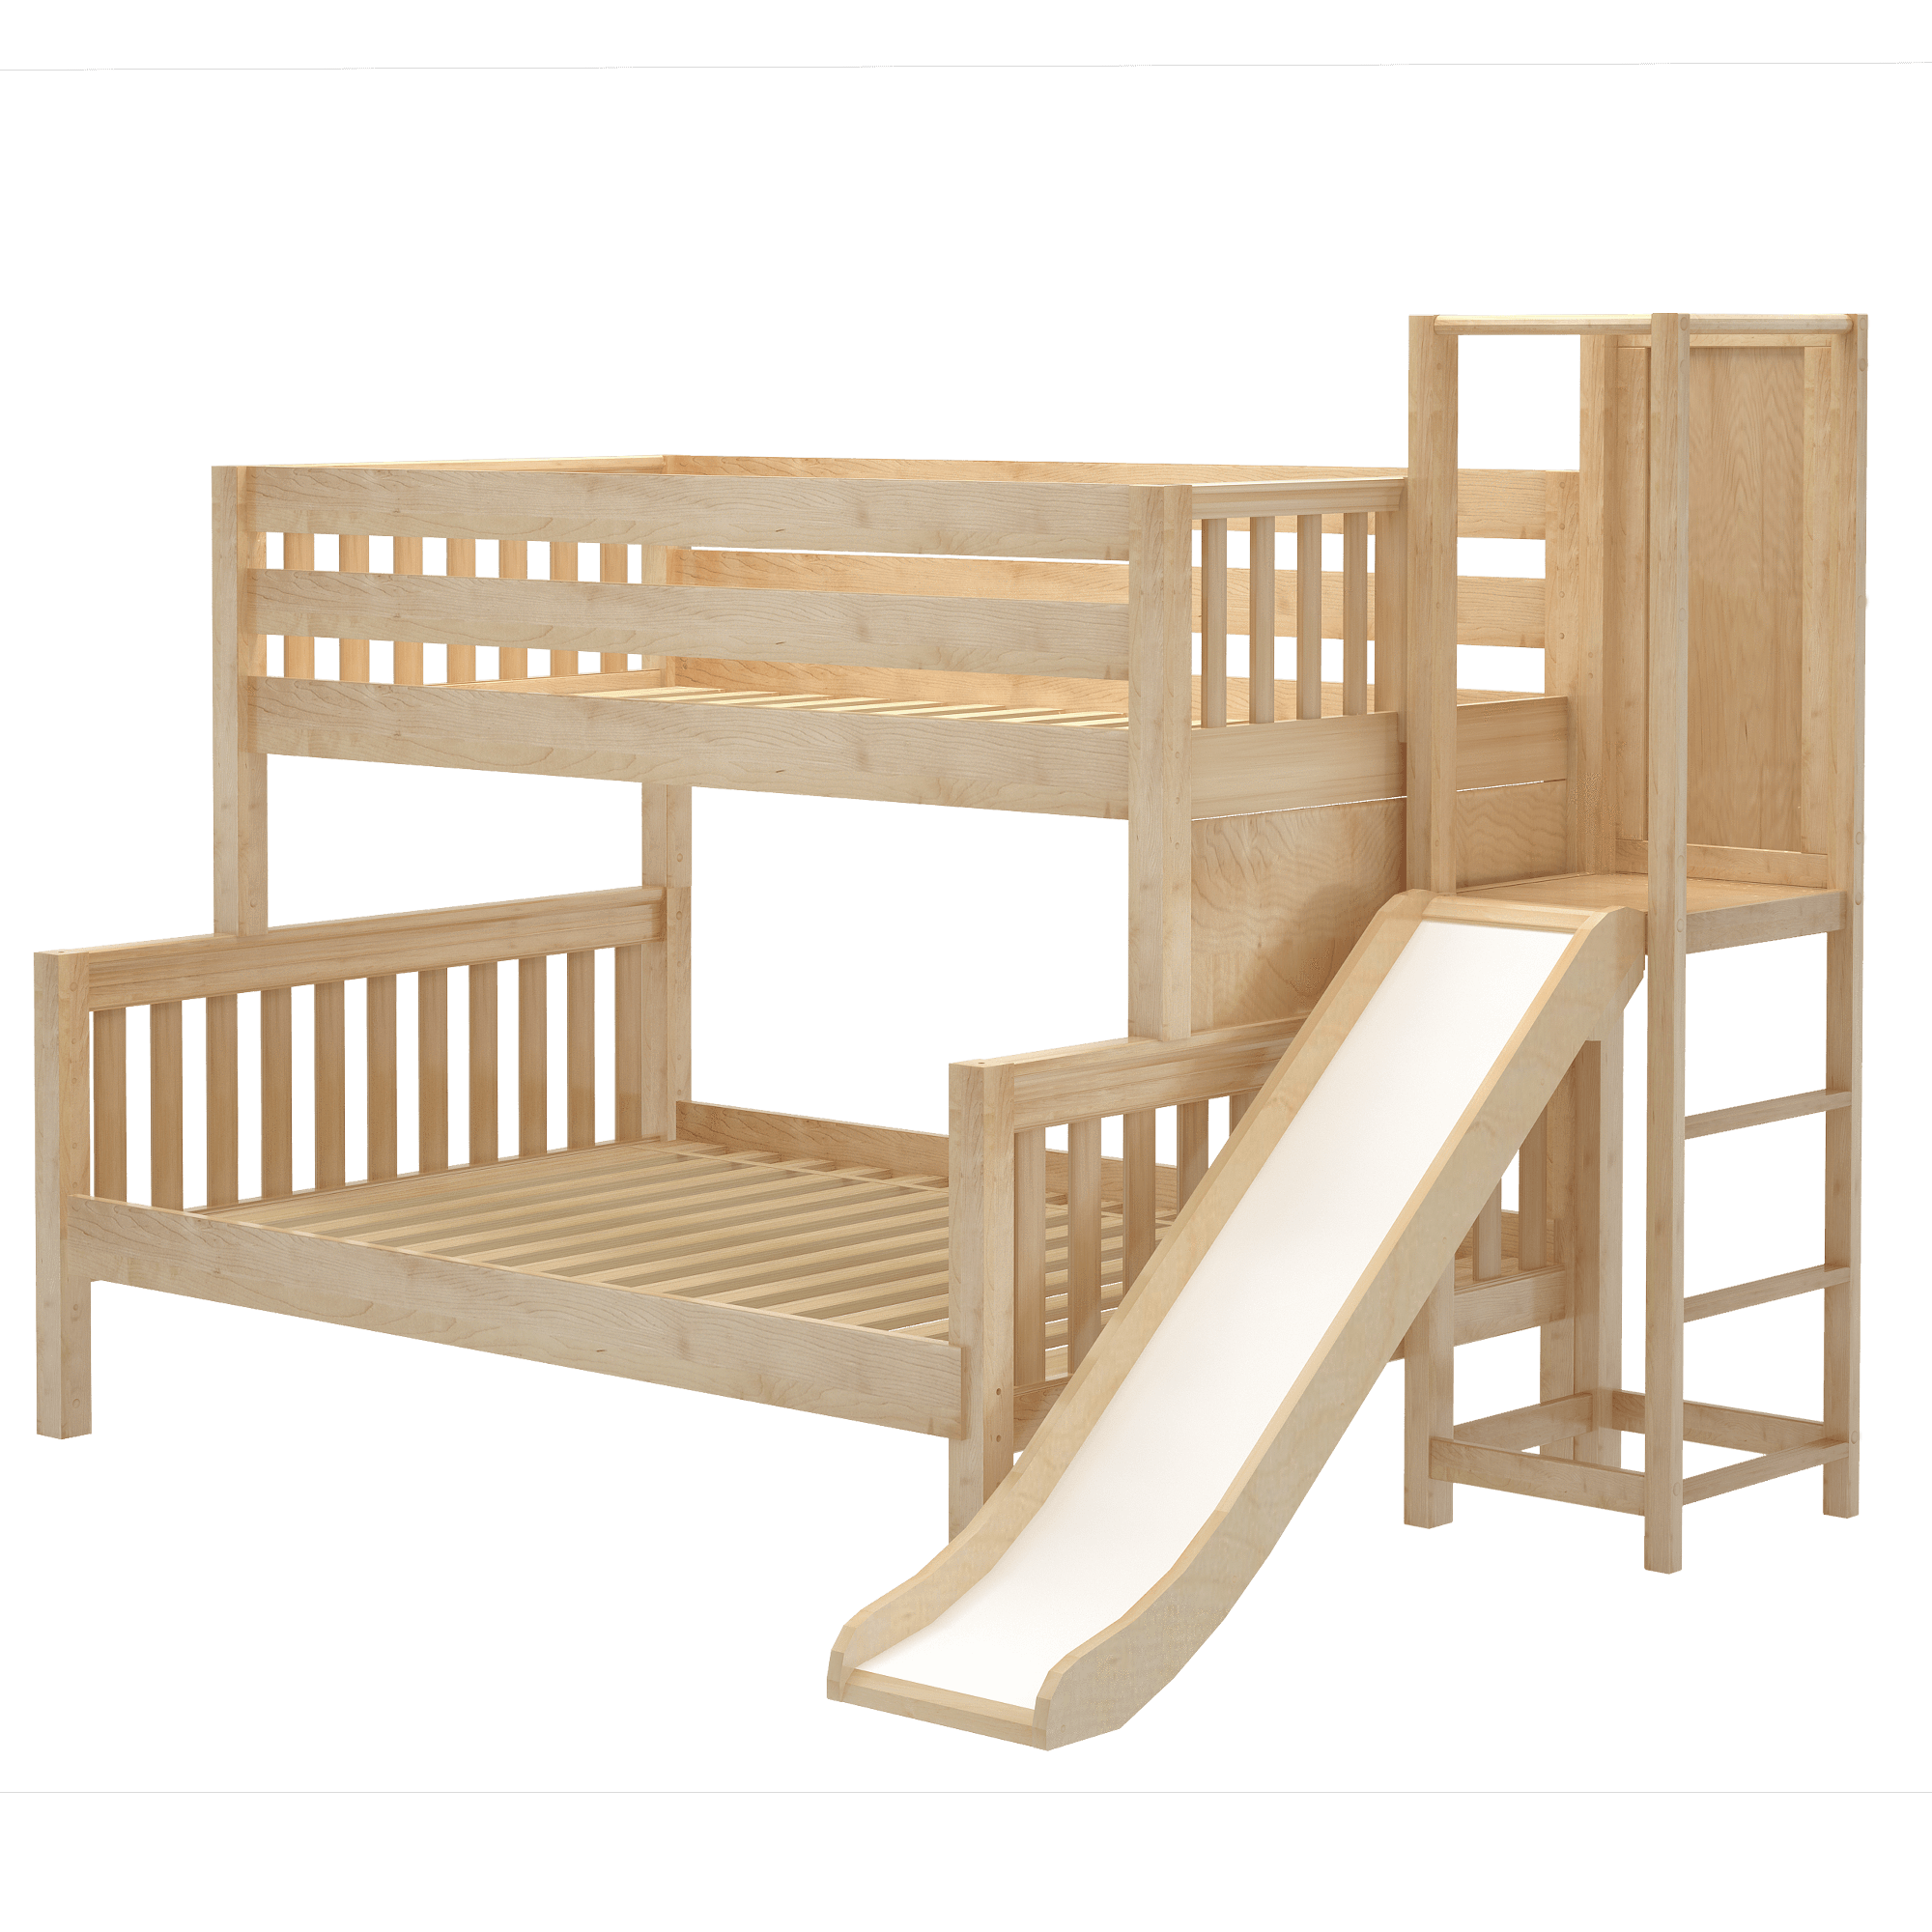 Low Twin Over Full Bunk Bed With Slide Platform In 2020 Bunk Bed With Slide Bed With Slide Bunk Bed Designs